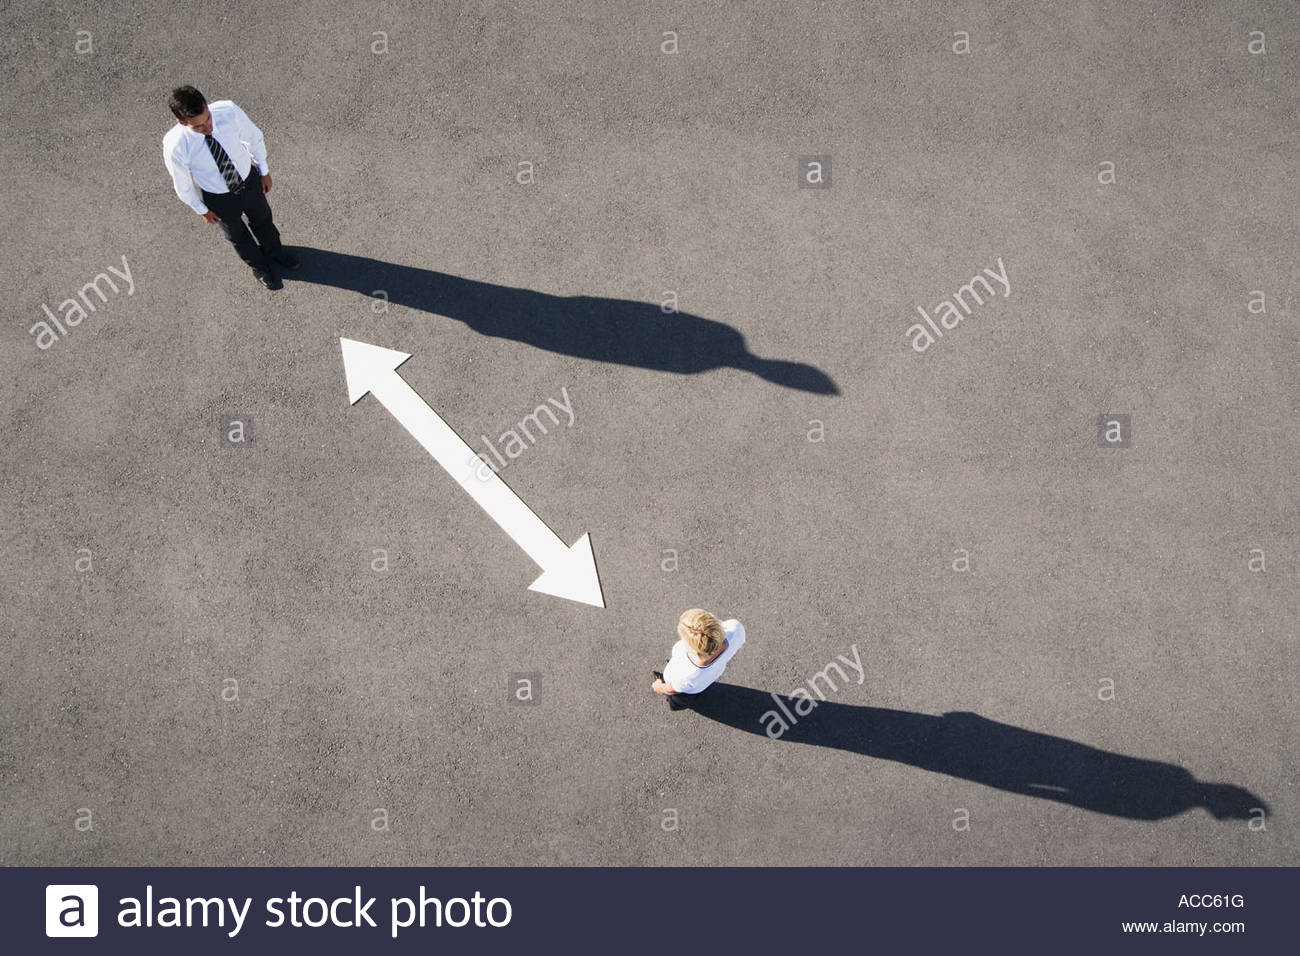 Aerial view of man and woman with arrow on pavement - Stock Image